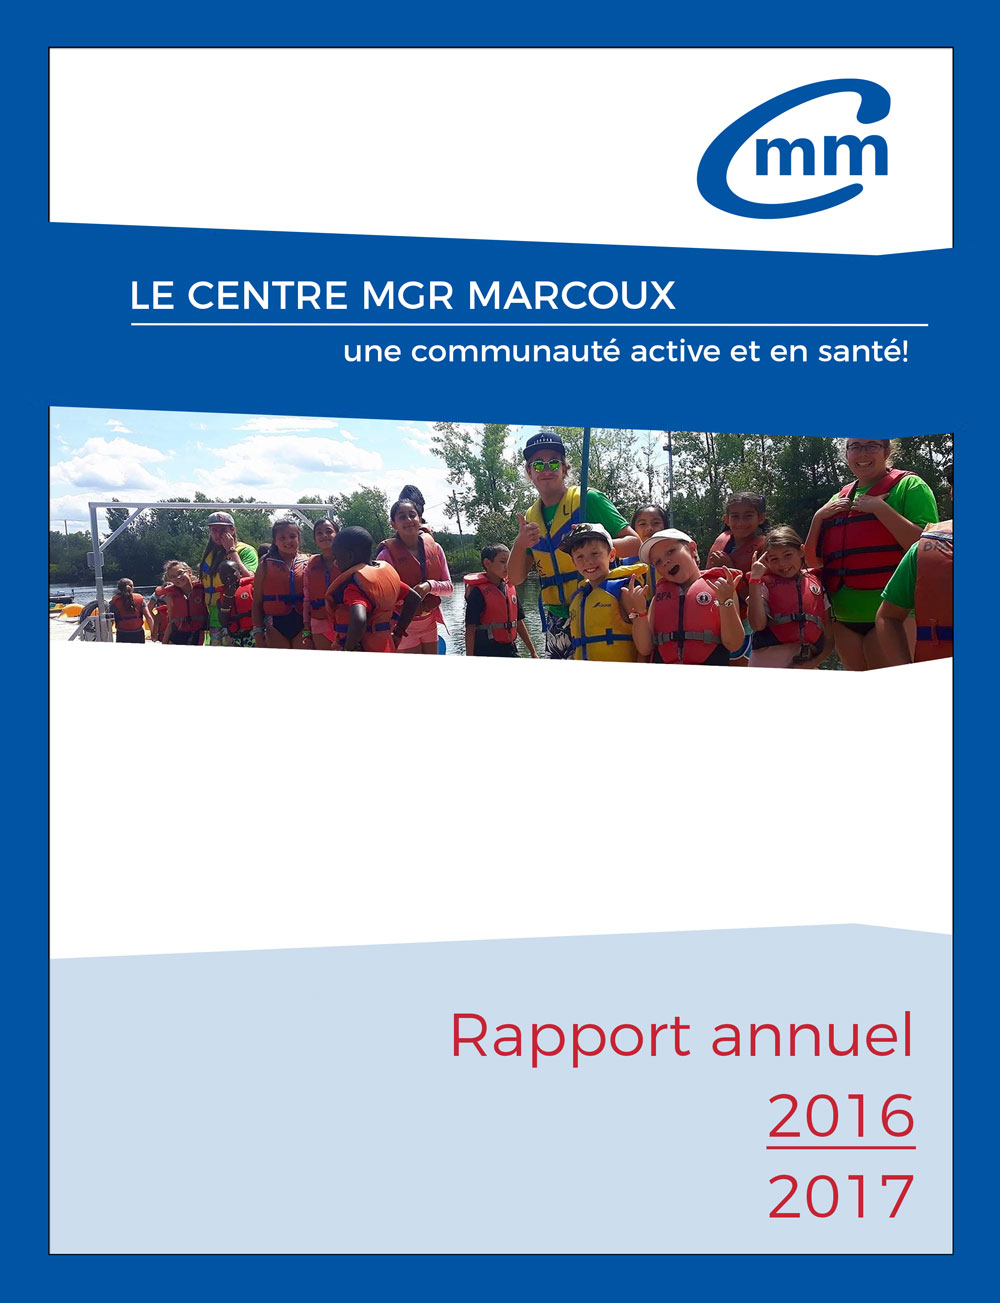 Rapport annuel 2016-2017 | Centre Mgr Marcoux